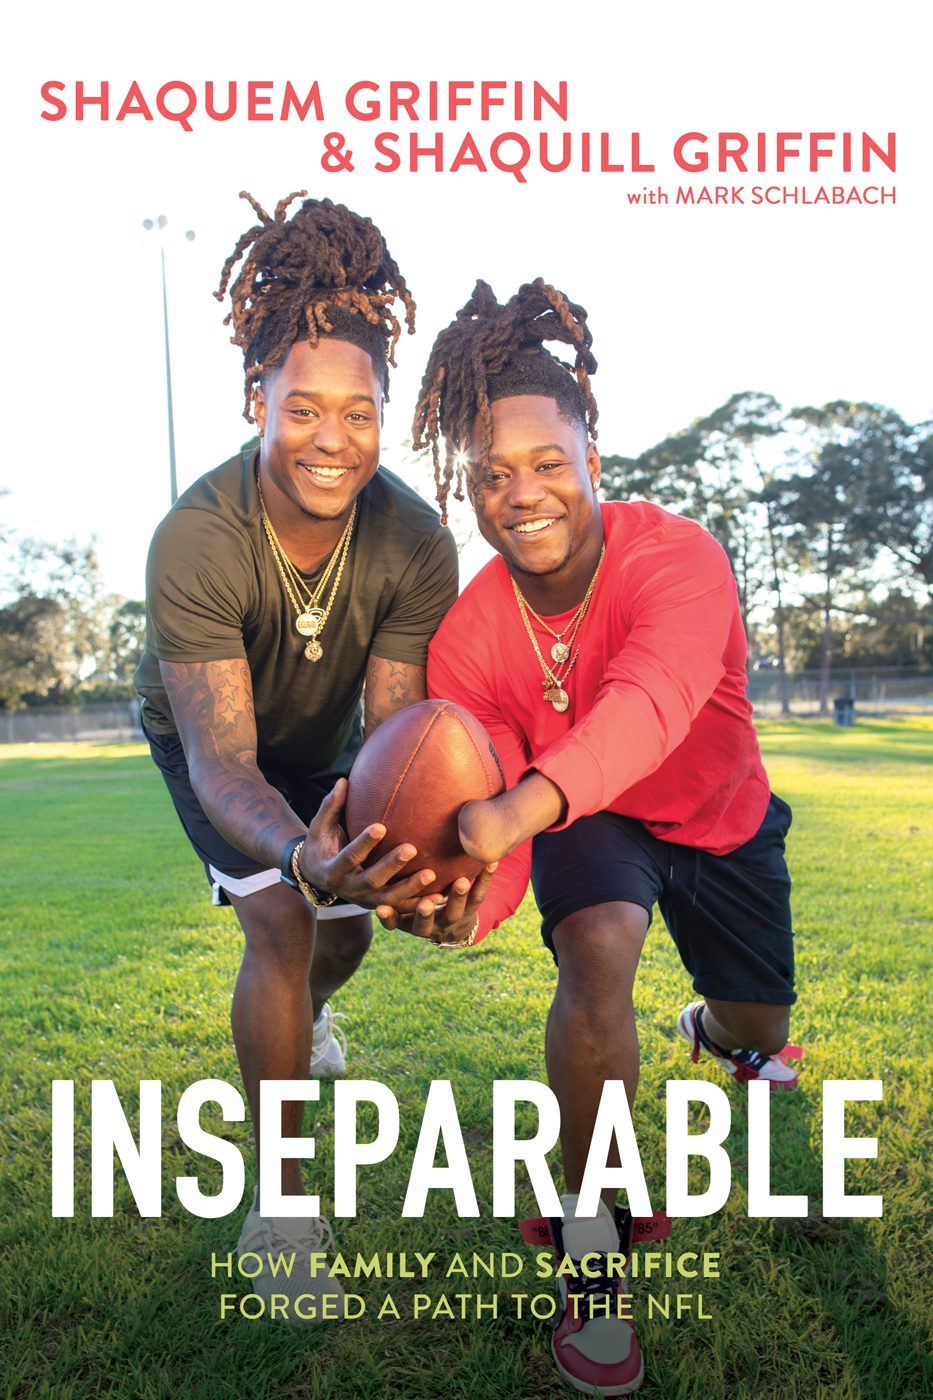 Inseparable by Shaquem Griffin and Shaquill Griffin